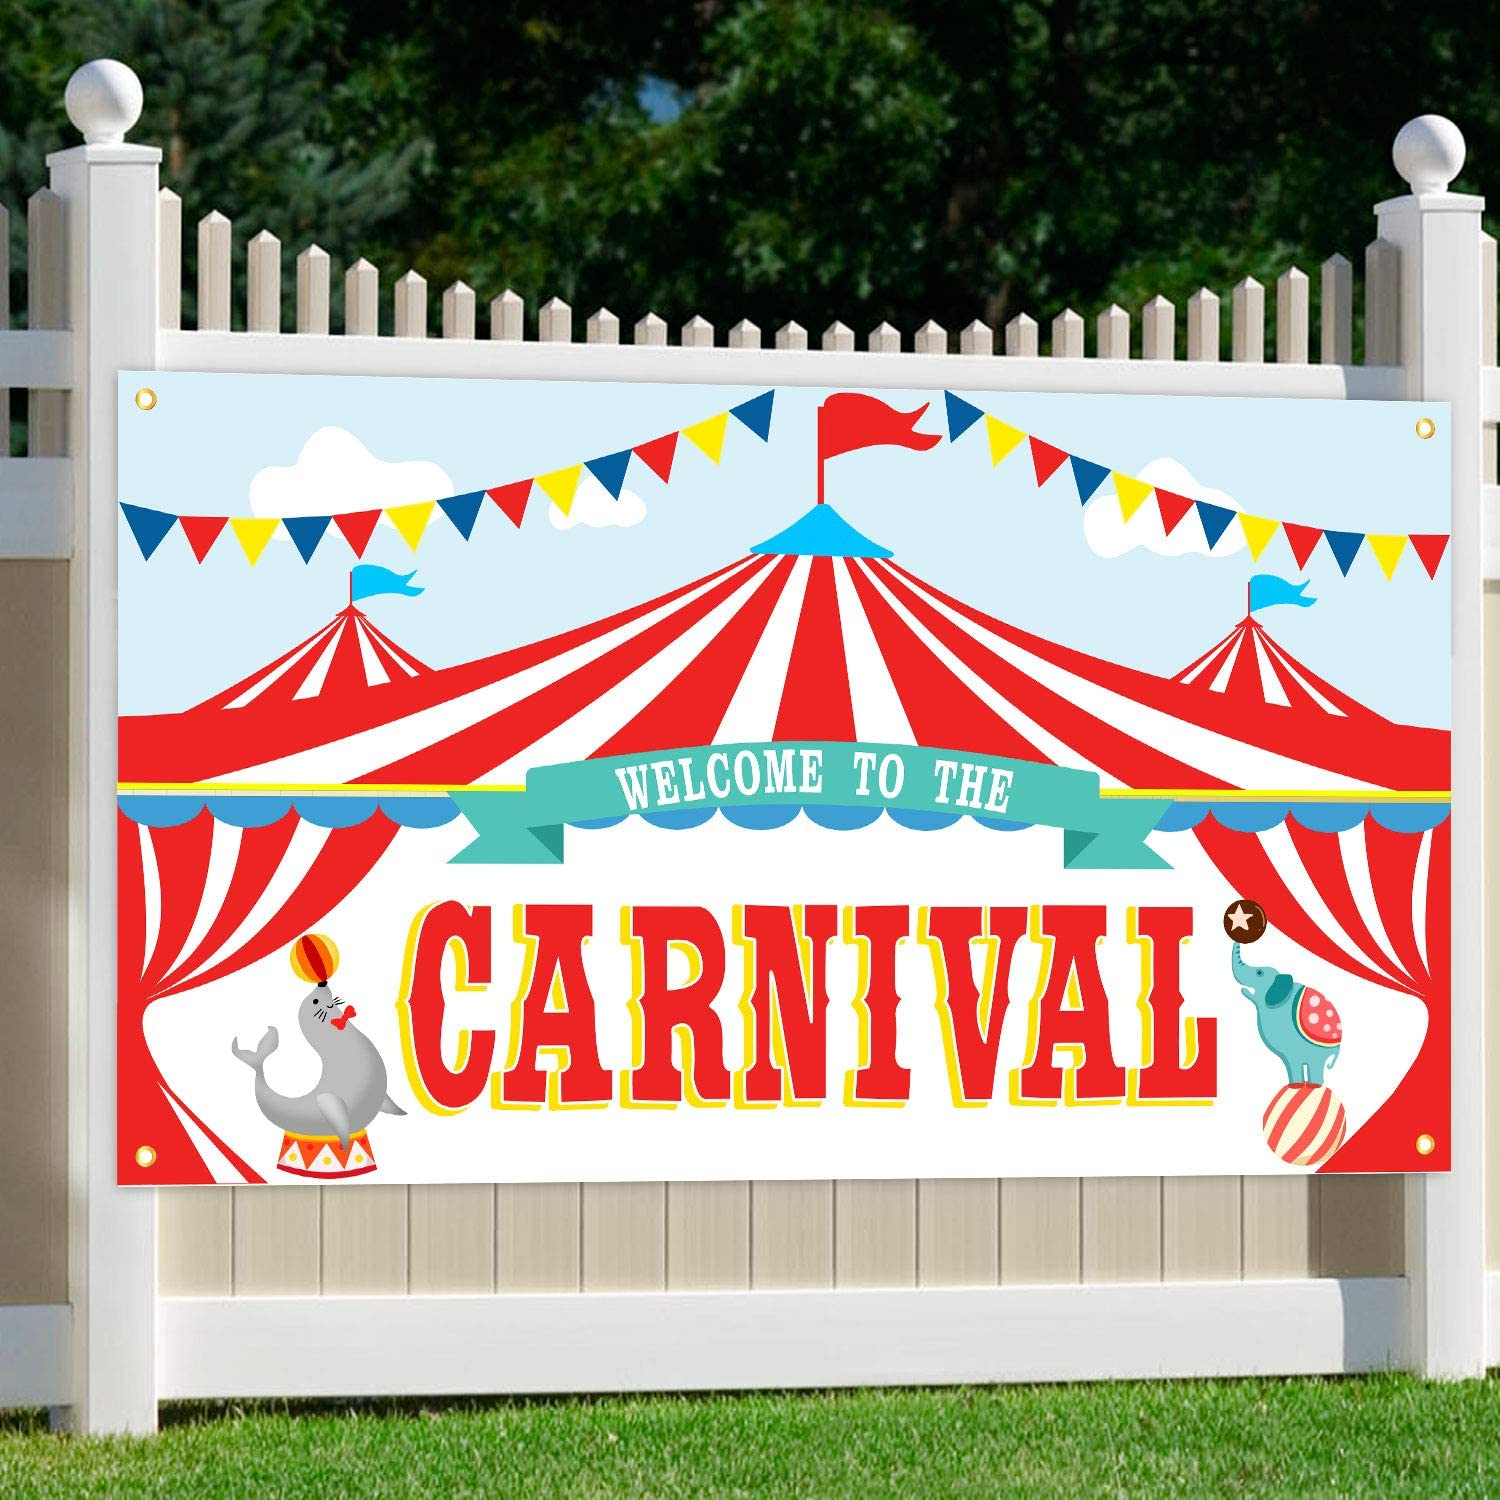 Oriental Cherry Carnival Party Supplies Circus Decorations Carnival Theme Large Backdrop Banner Sign For Kids Birthday School Outdoor Home Wall